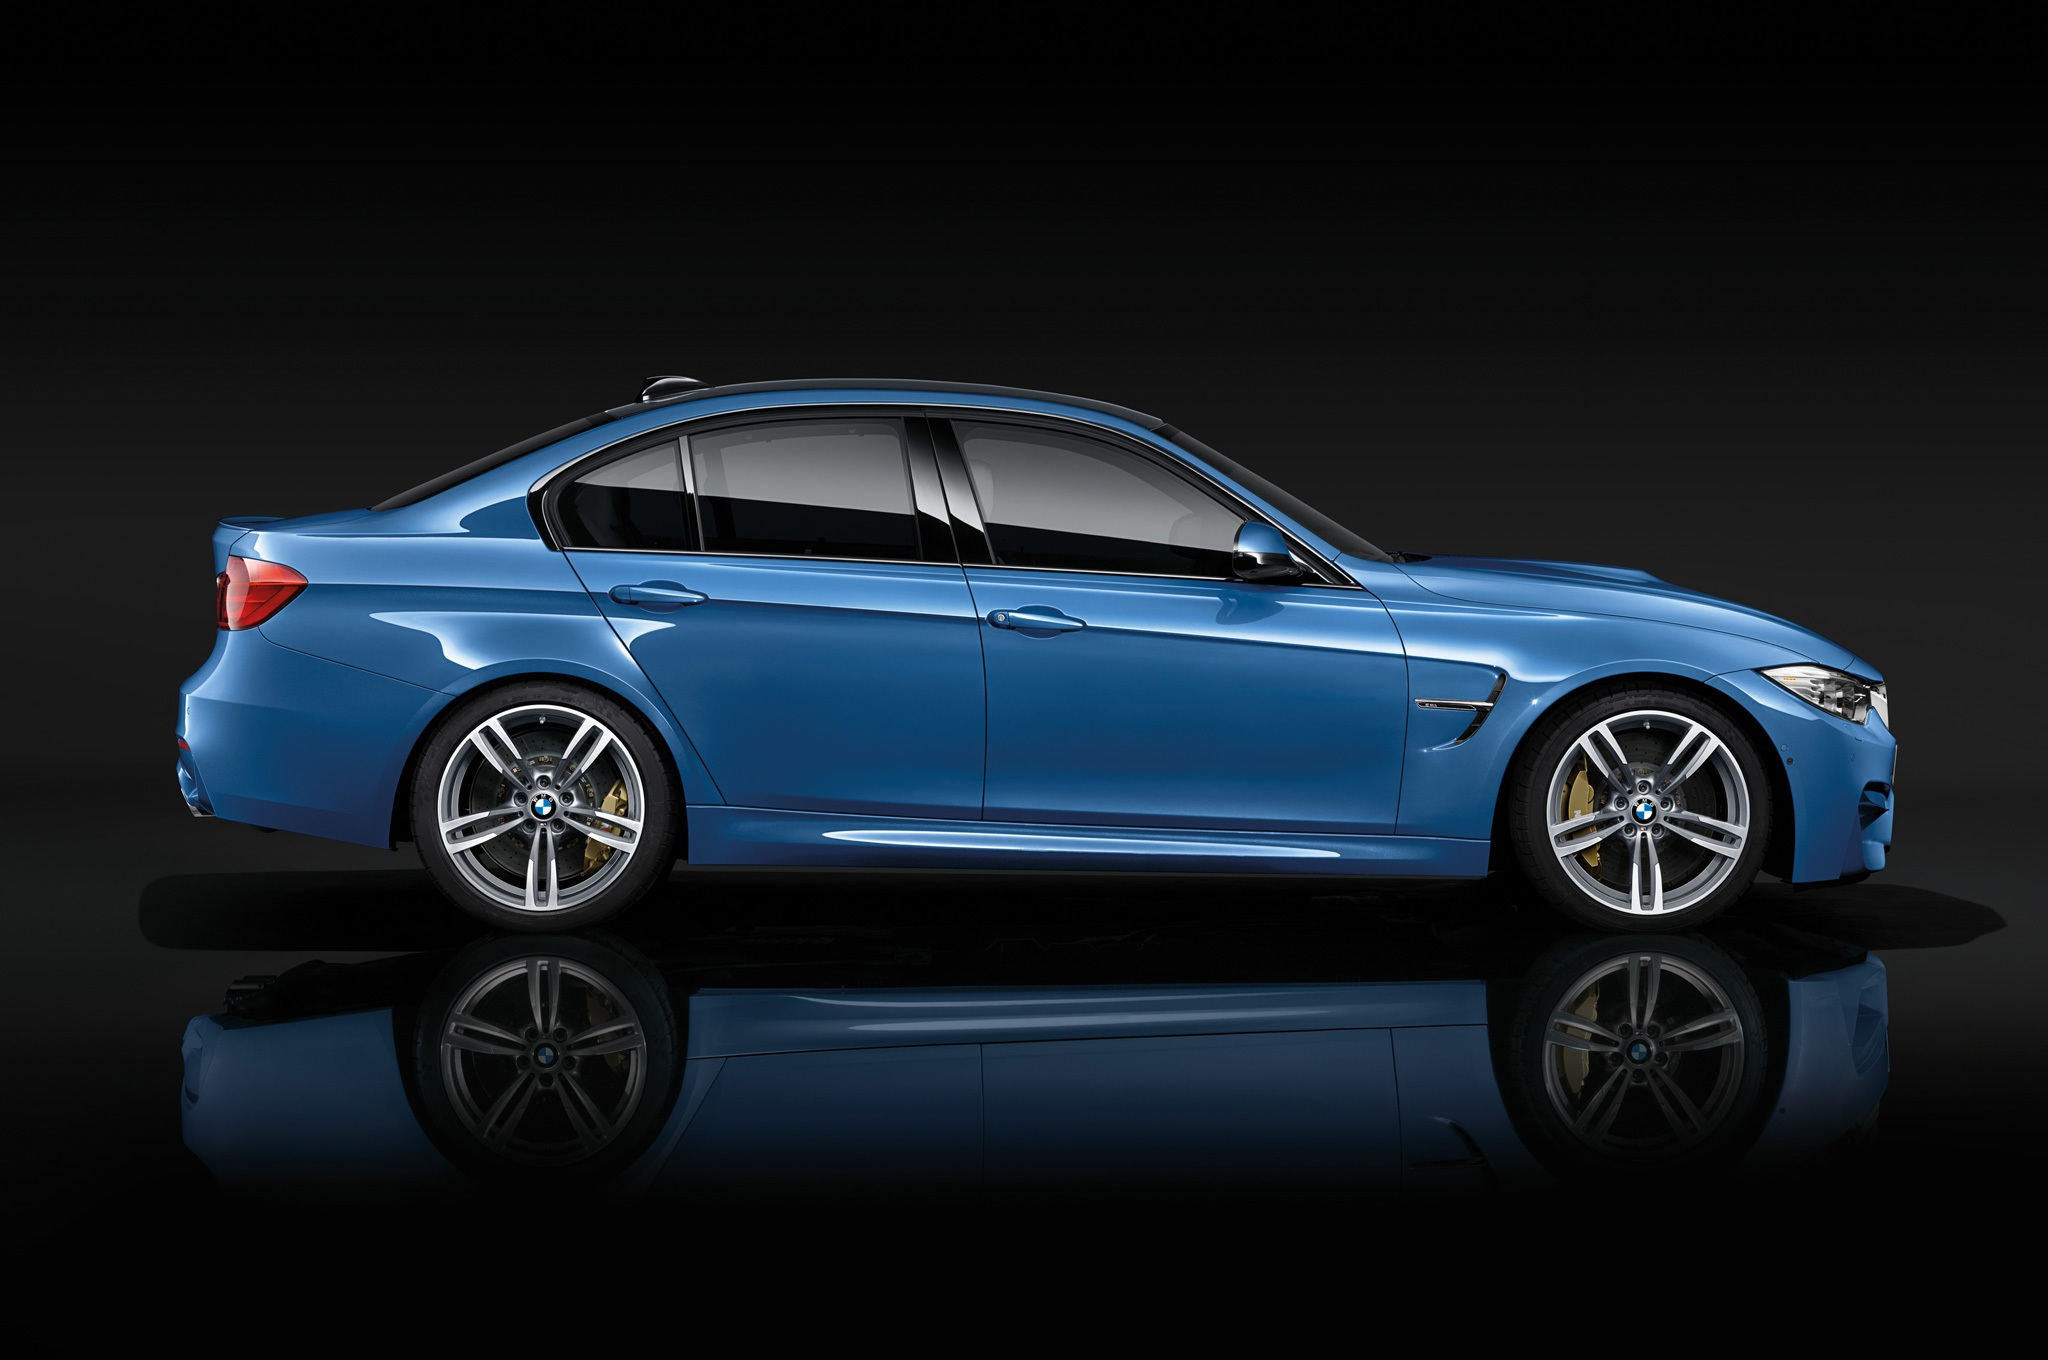 2015 Bmw M3 Side View (Photo 54 of 55)